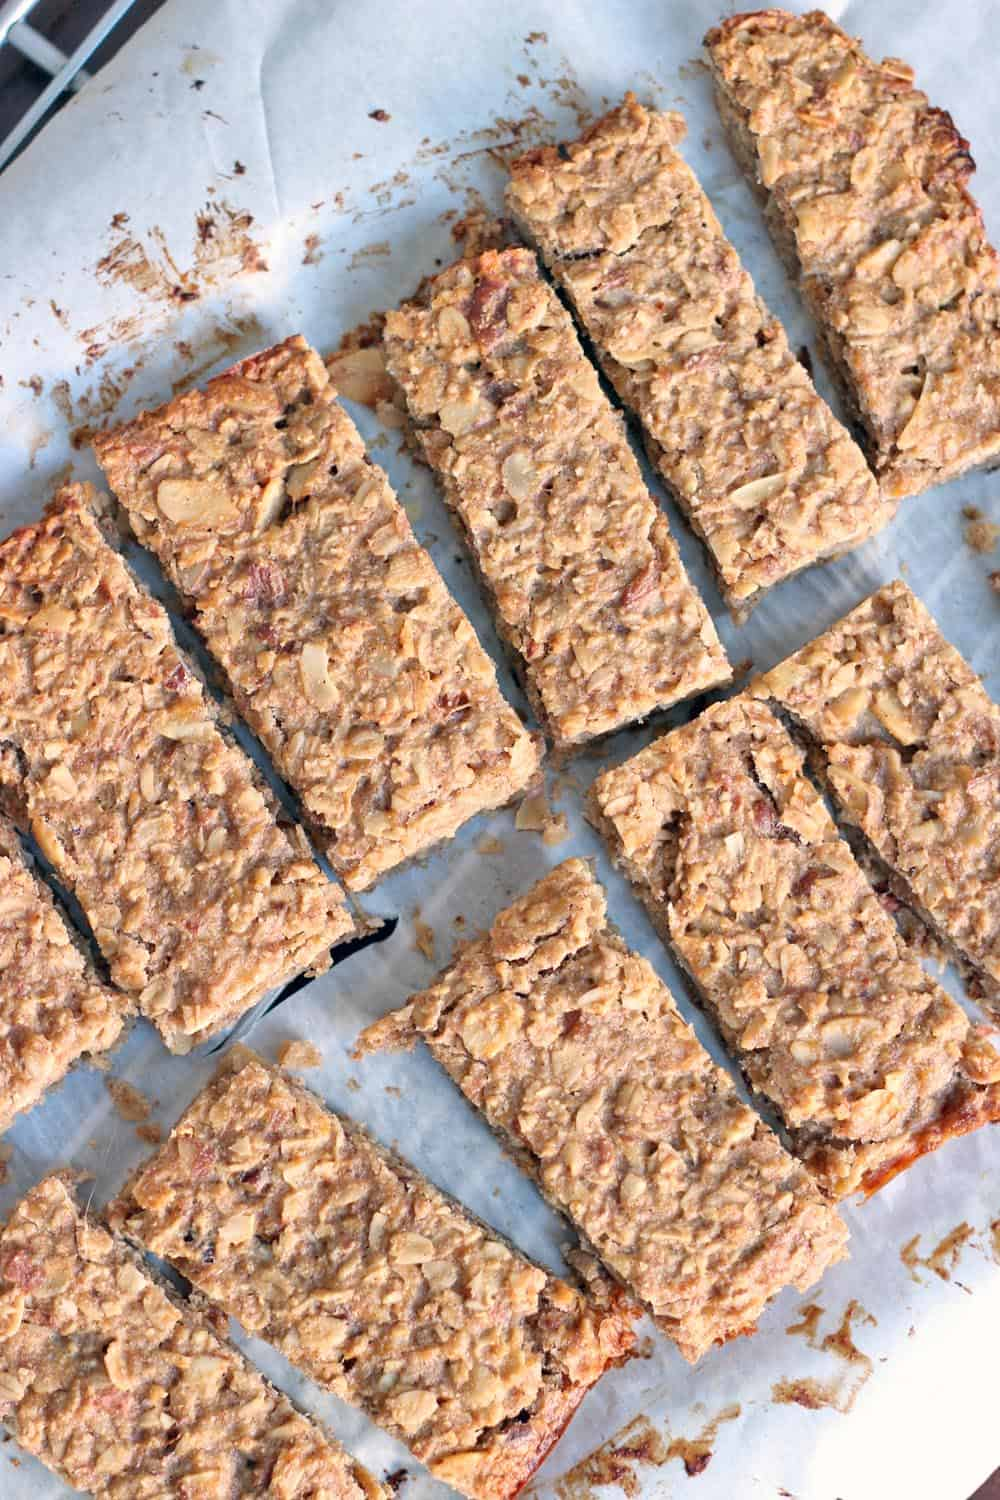 Overhead view of sliced peanut butter and banana energy bars.